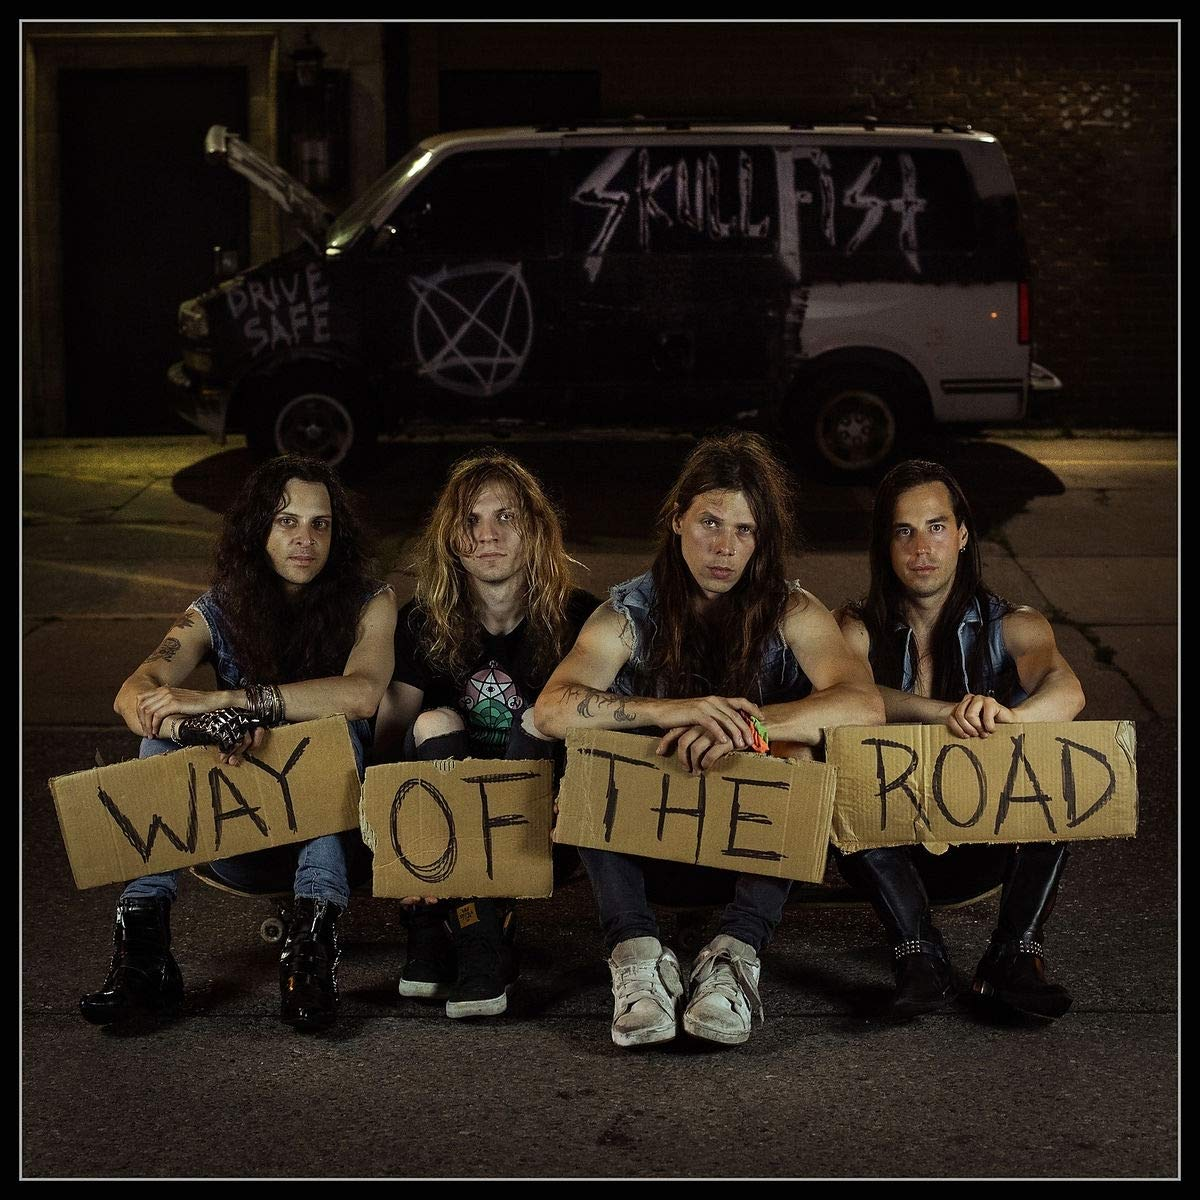 Way of the road